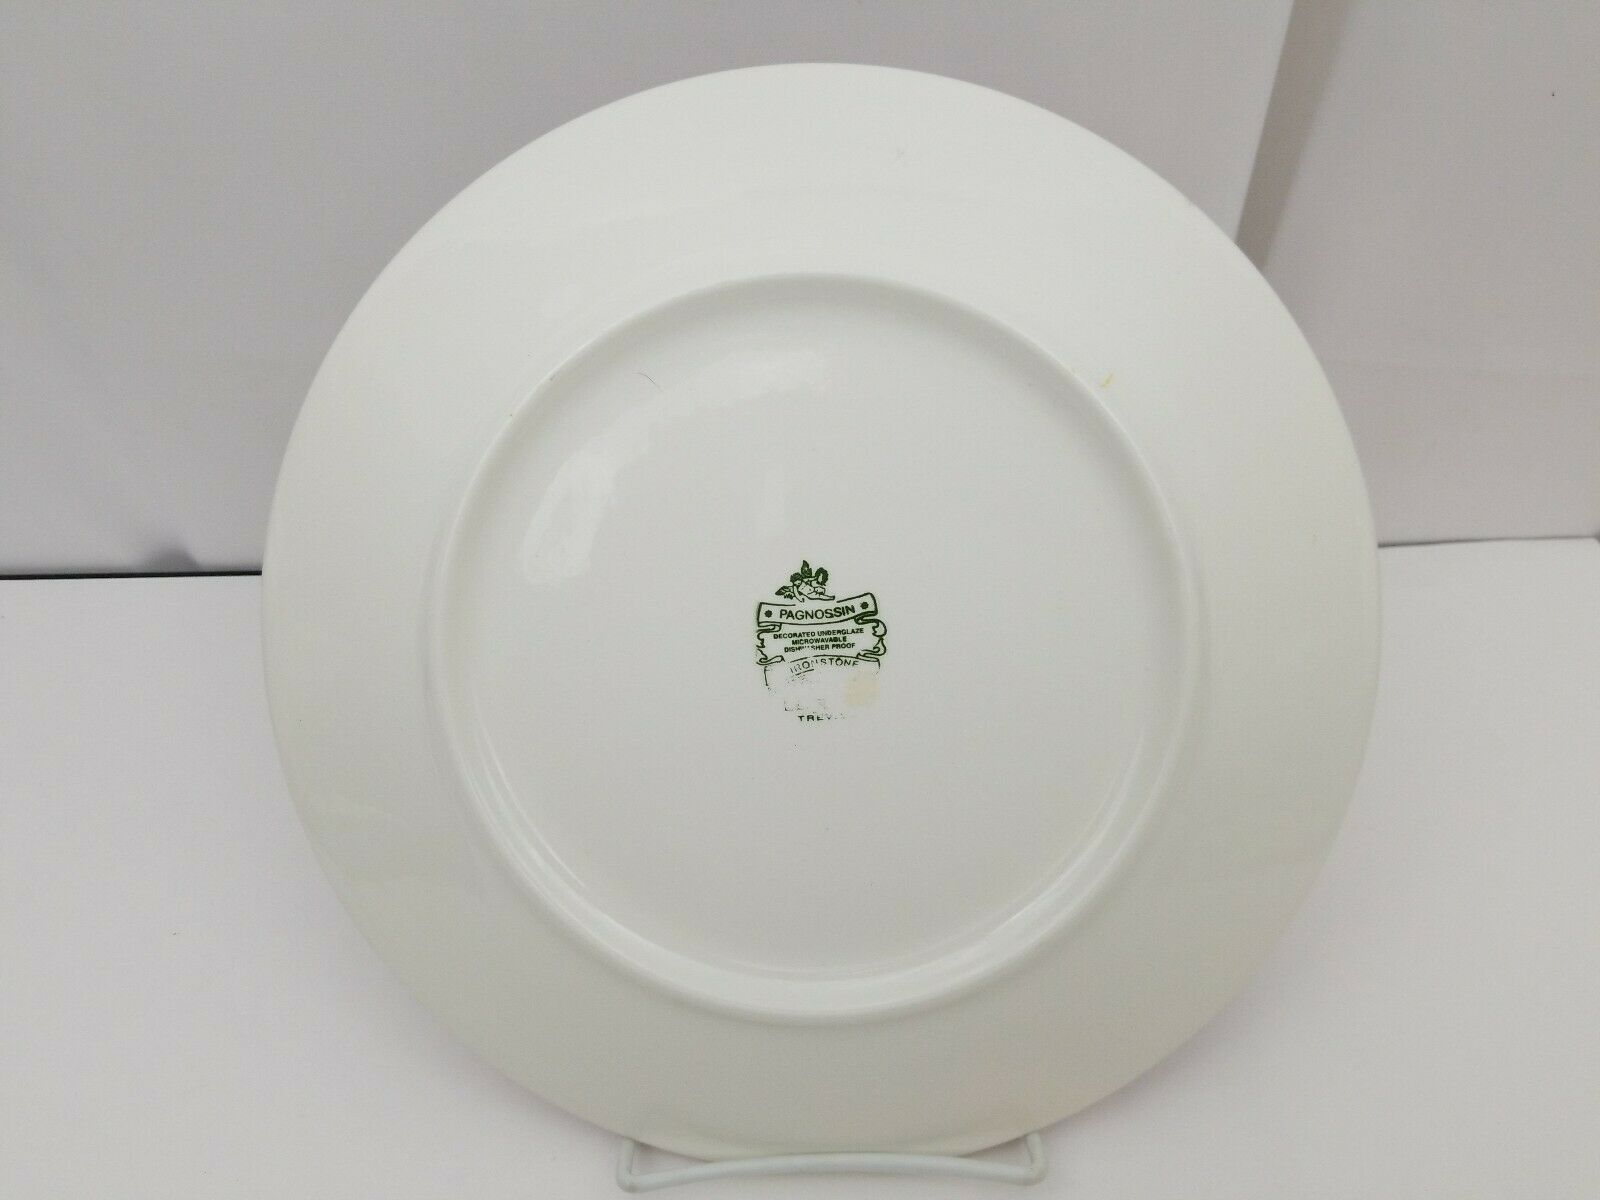 """Pagnossin Trevisco Dinner Plate 10 5/8"""" Ironstone Spa Rust, Italy LD06 Dish Safe image 2"""